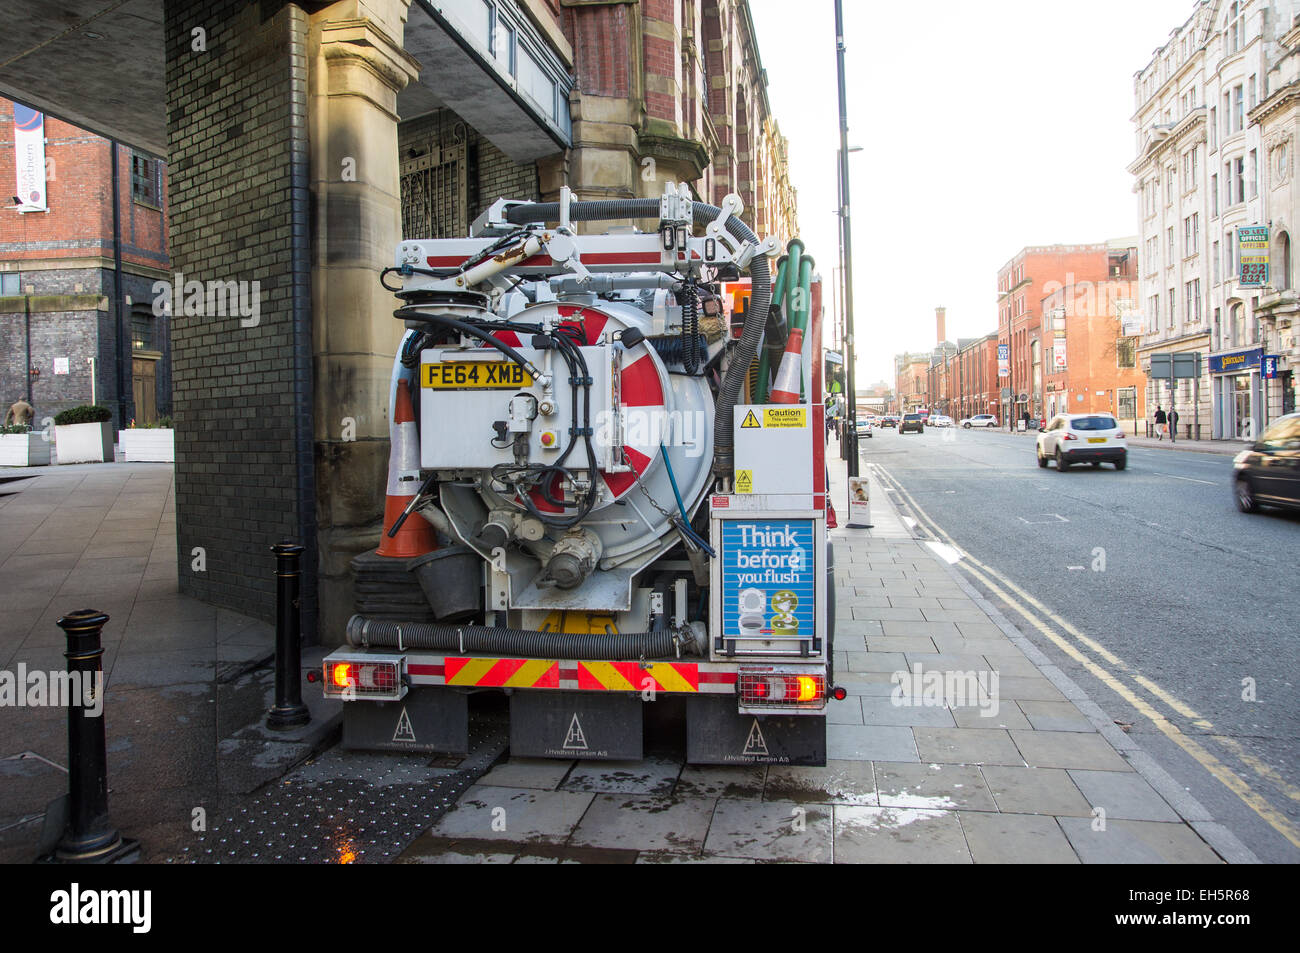 Emergency Sewer Maintenance, Deansgate, Manchester - Stock Image